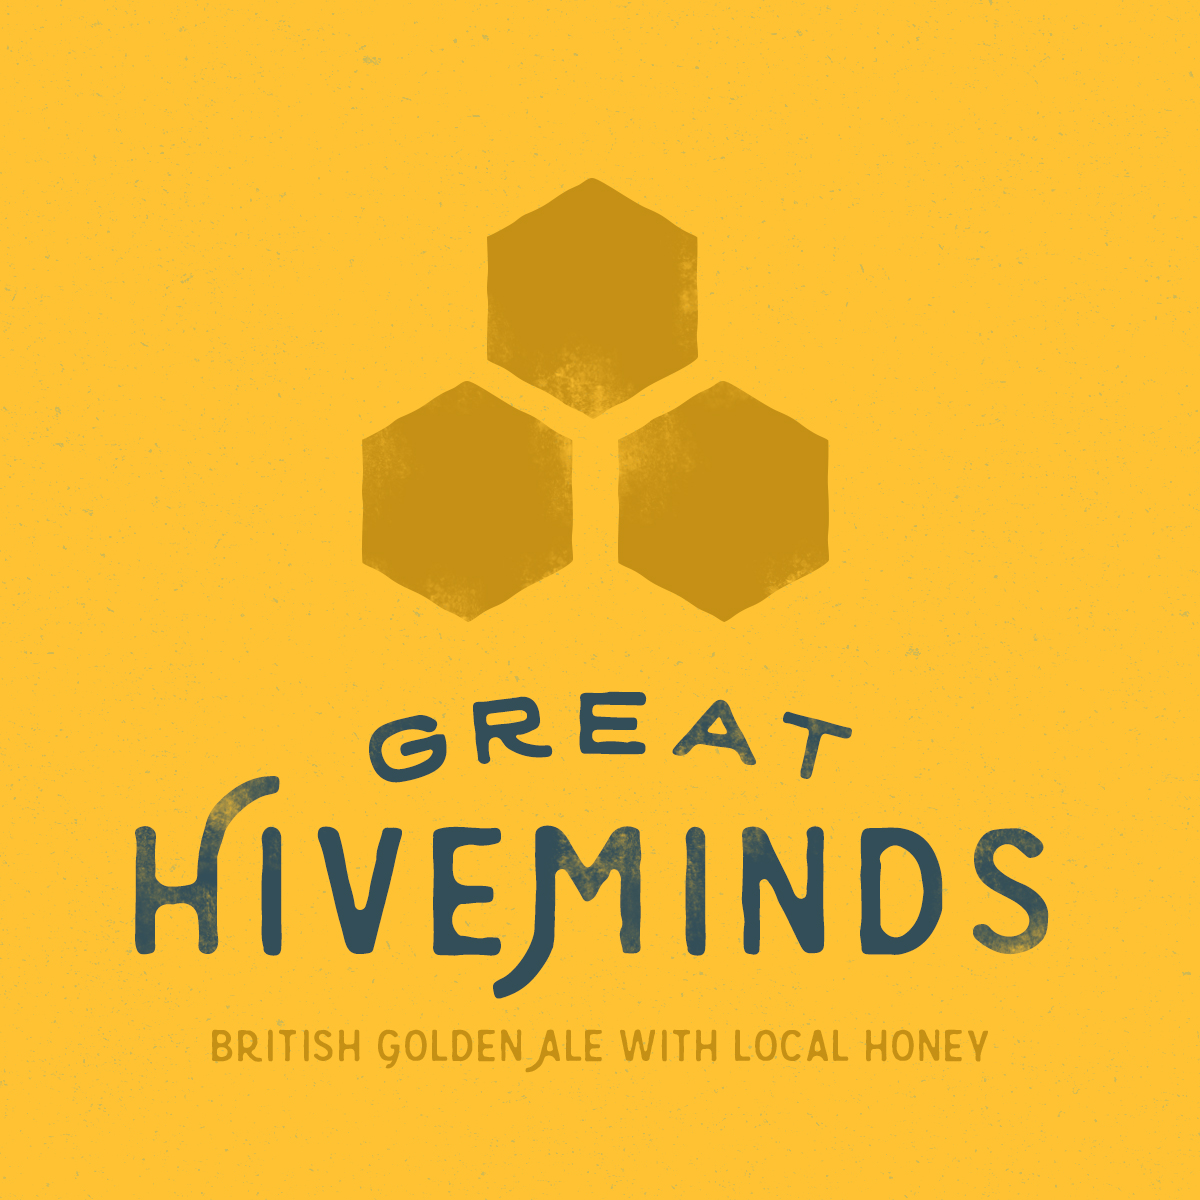 Great Hiveminds